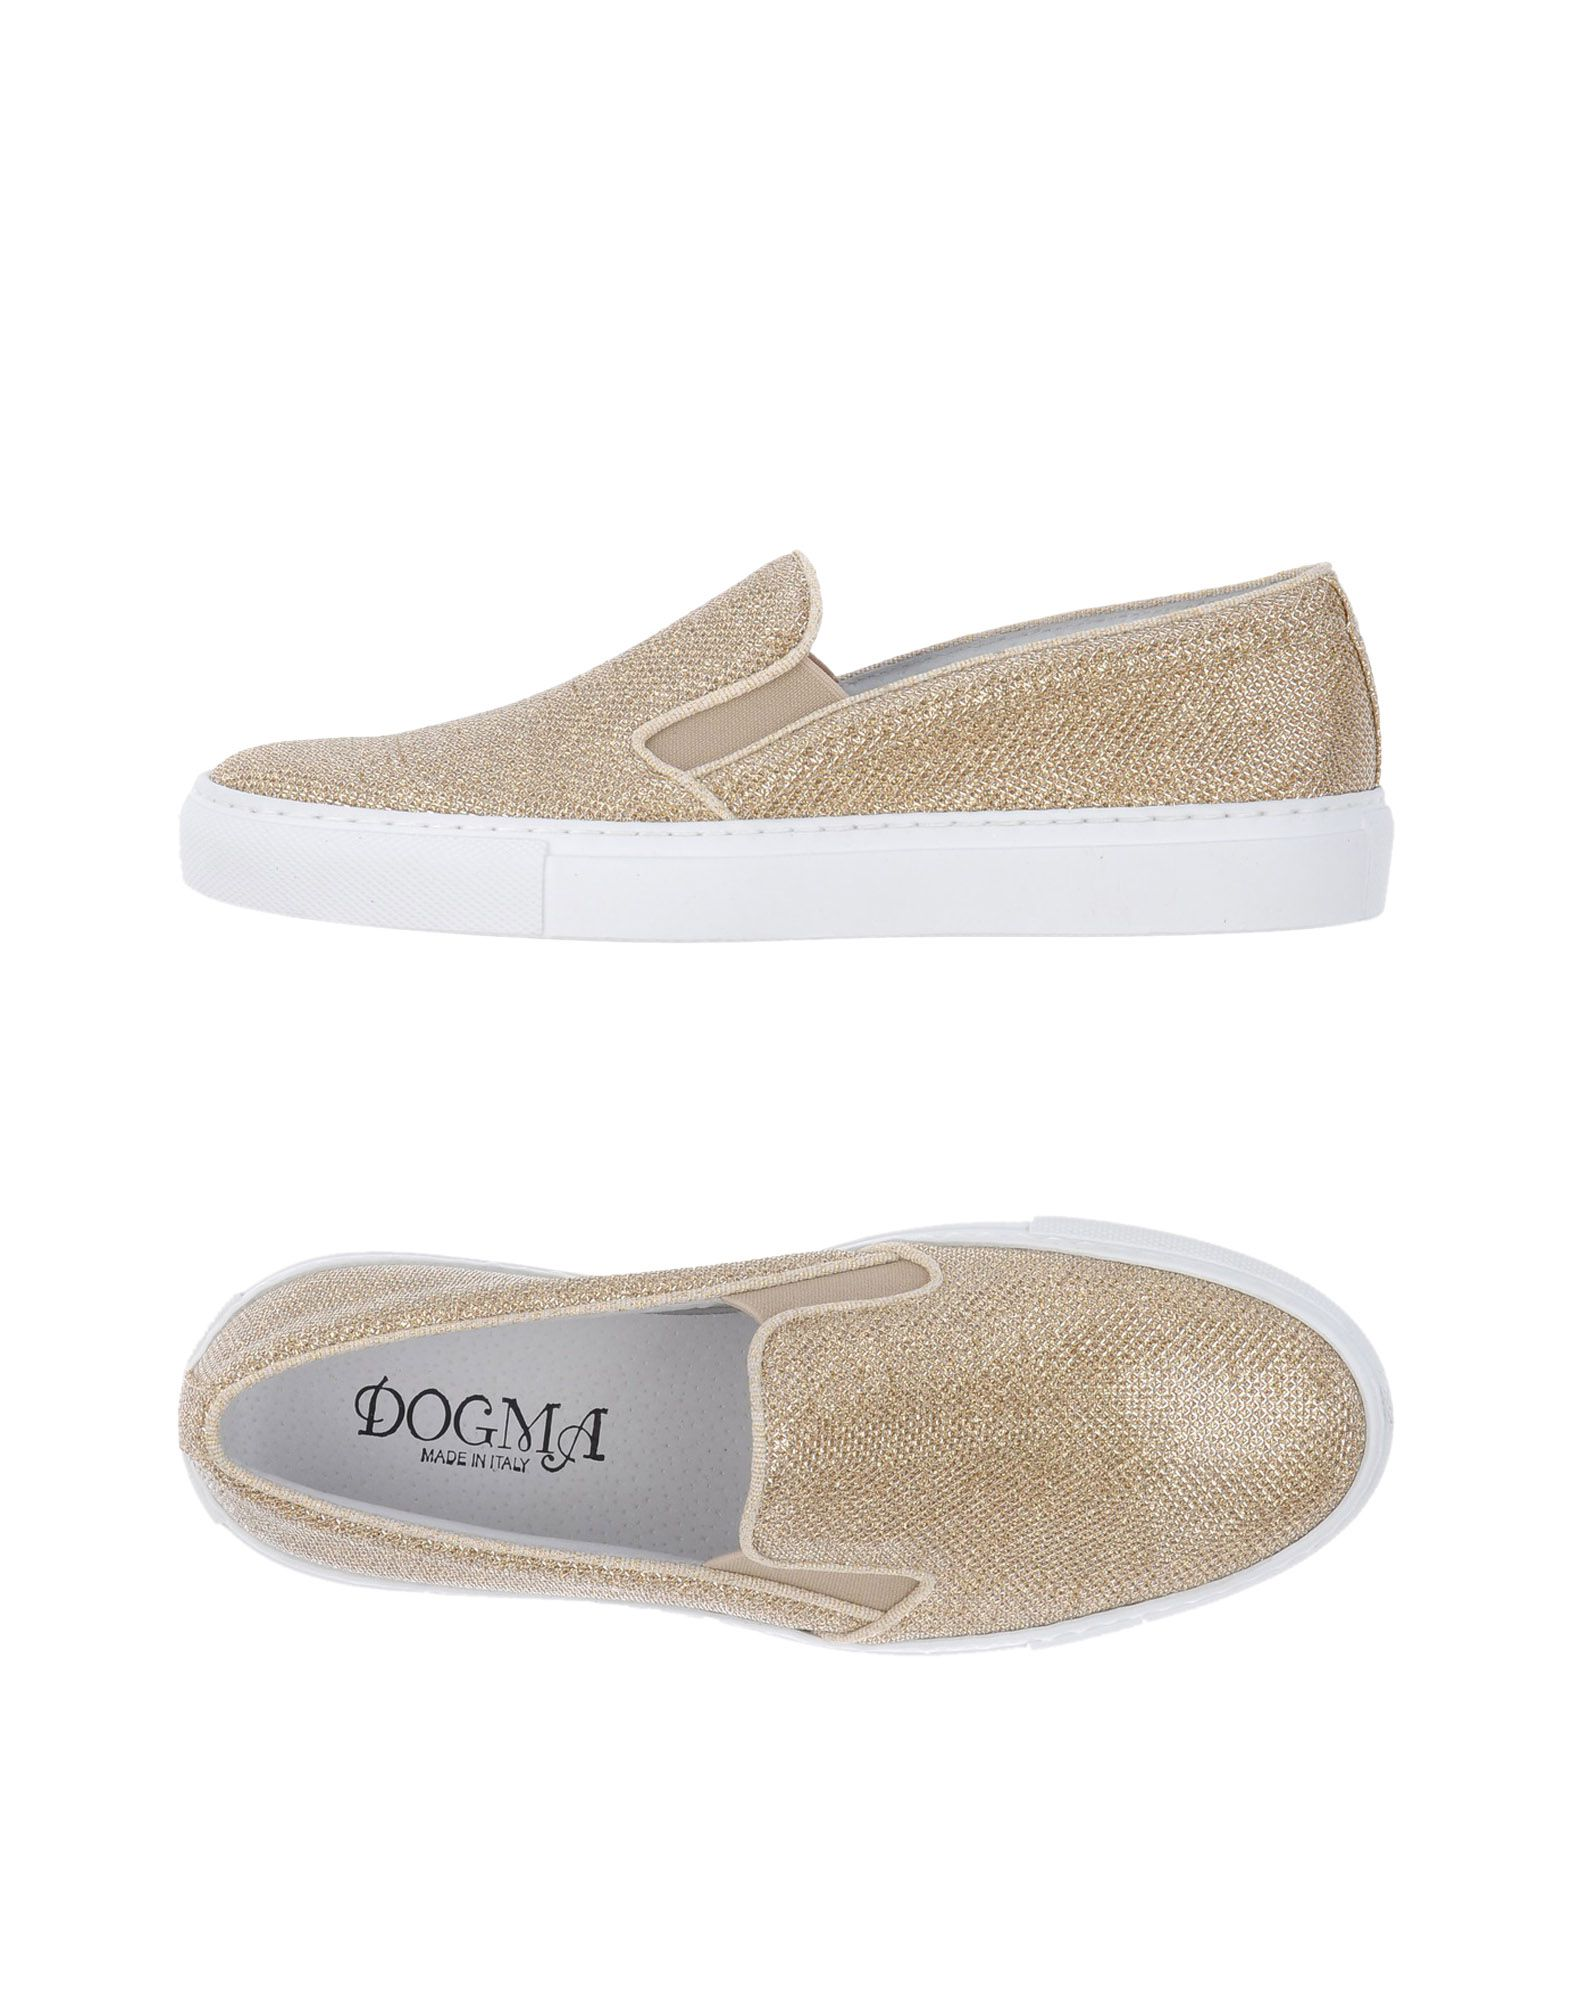 Dogma Sneakers - Women Dogma Sneakers Sneakers Sneakers online on  Canada - 11238188HF 592732